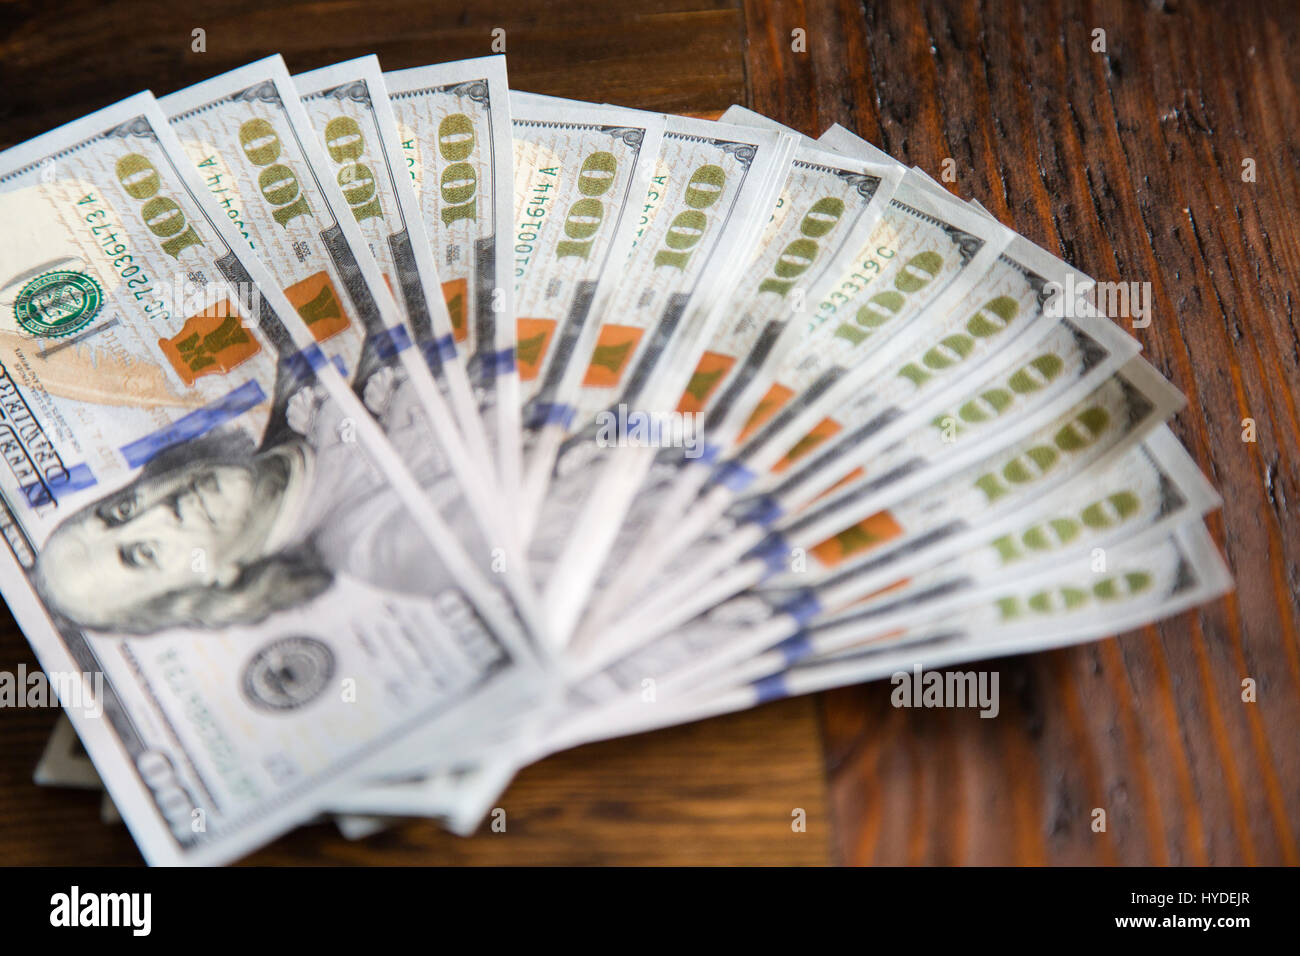 A stack of brand new one hundred dollar bills in US currency